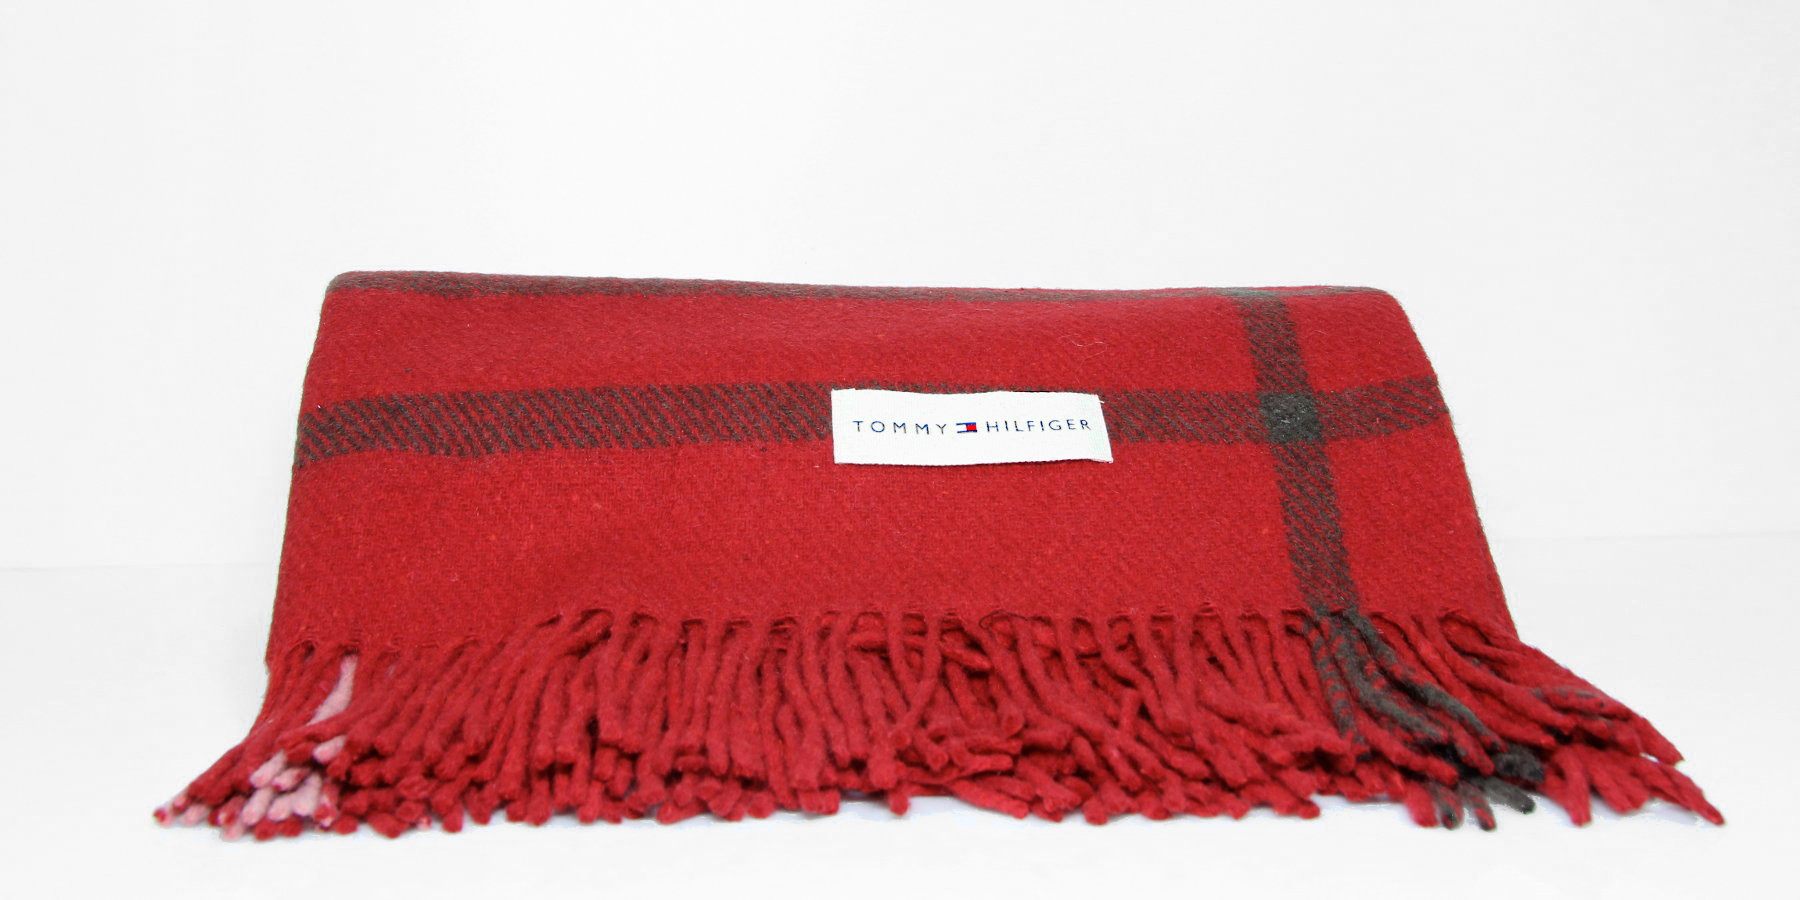 Tommy Hilfiger Plaid - Christmas Giveaway